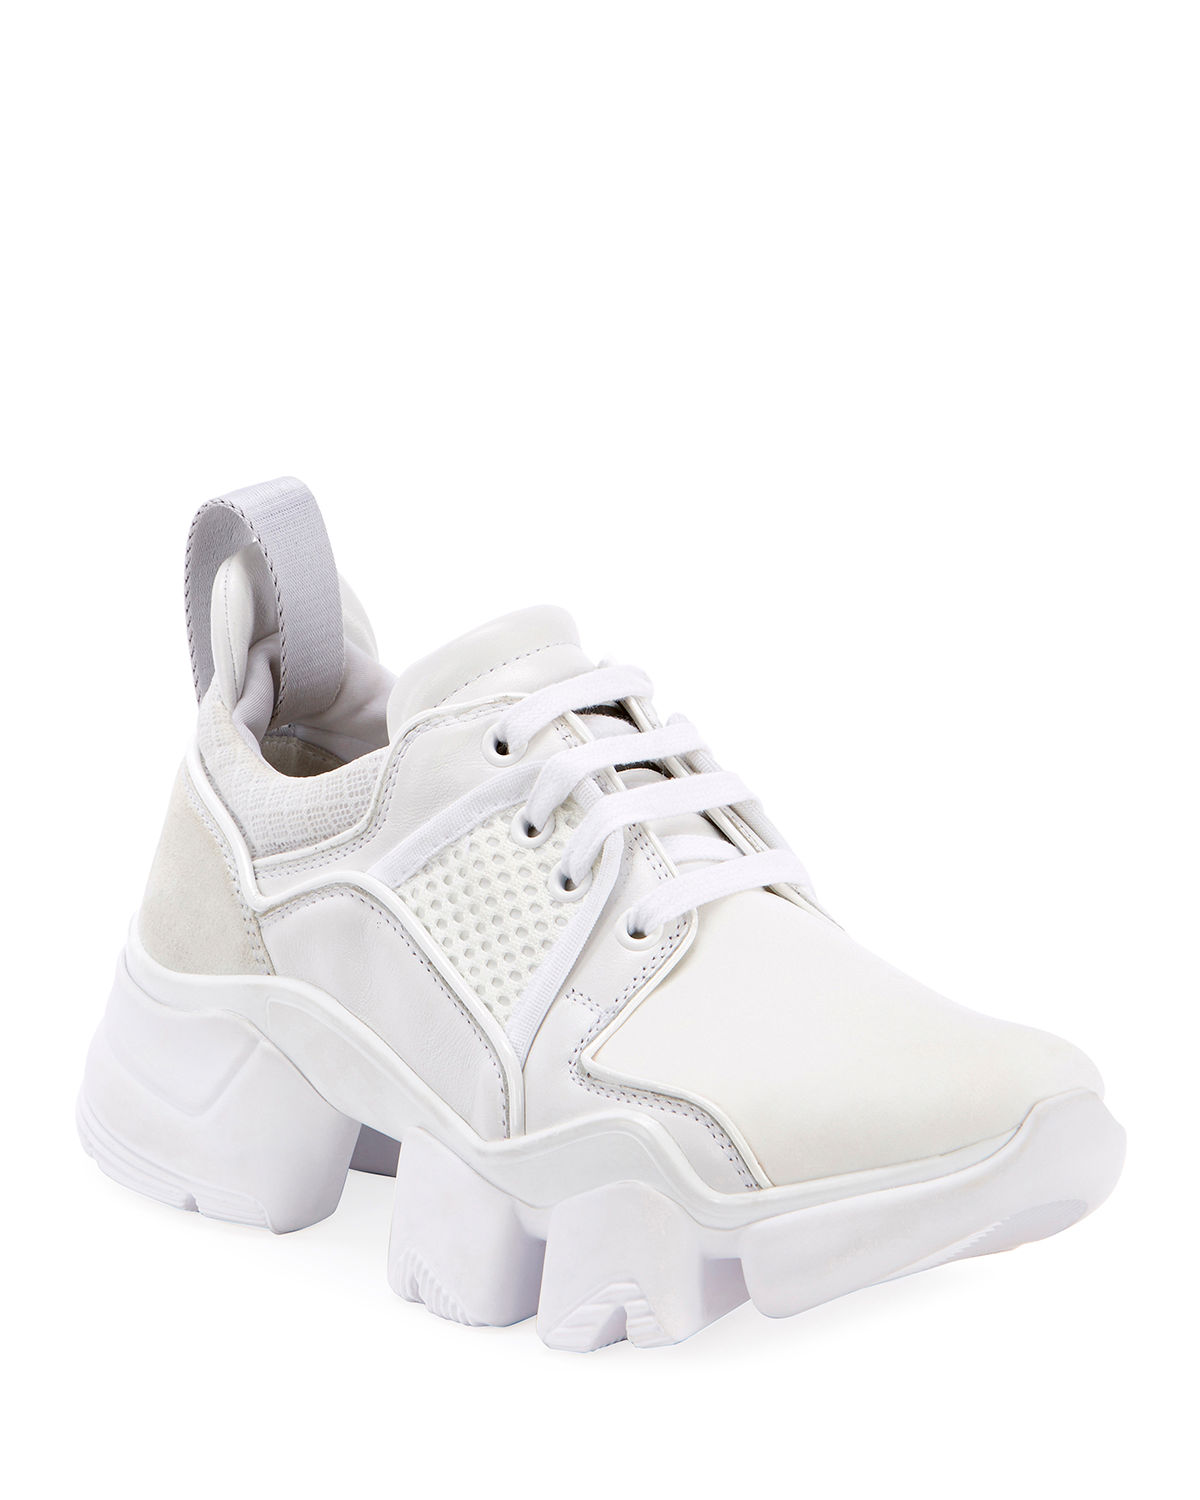 Givenchy Sneakers MIXED MEDIA CHUNKY SNEAKERS